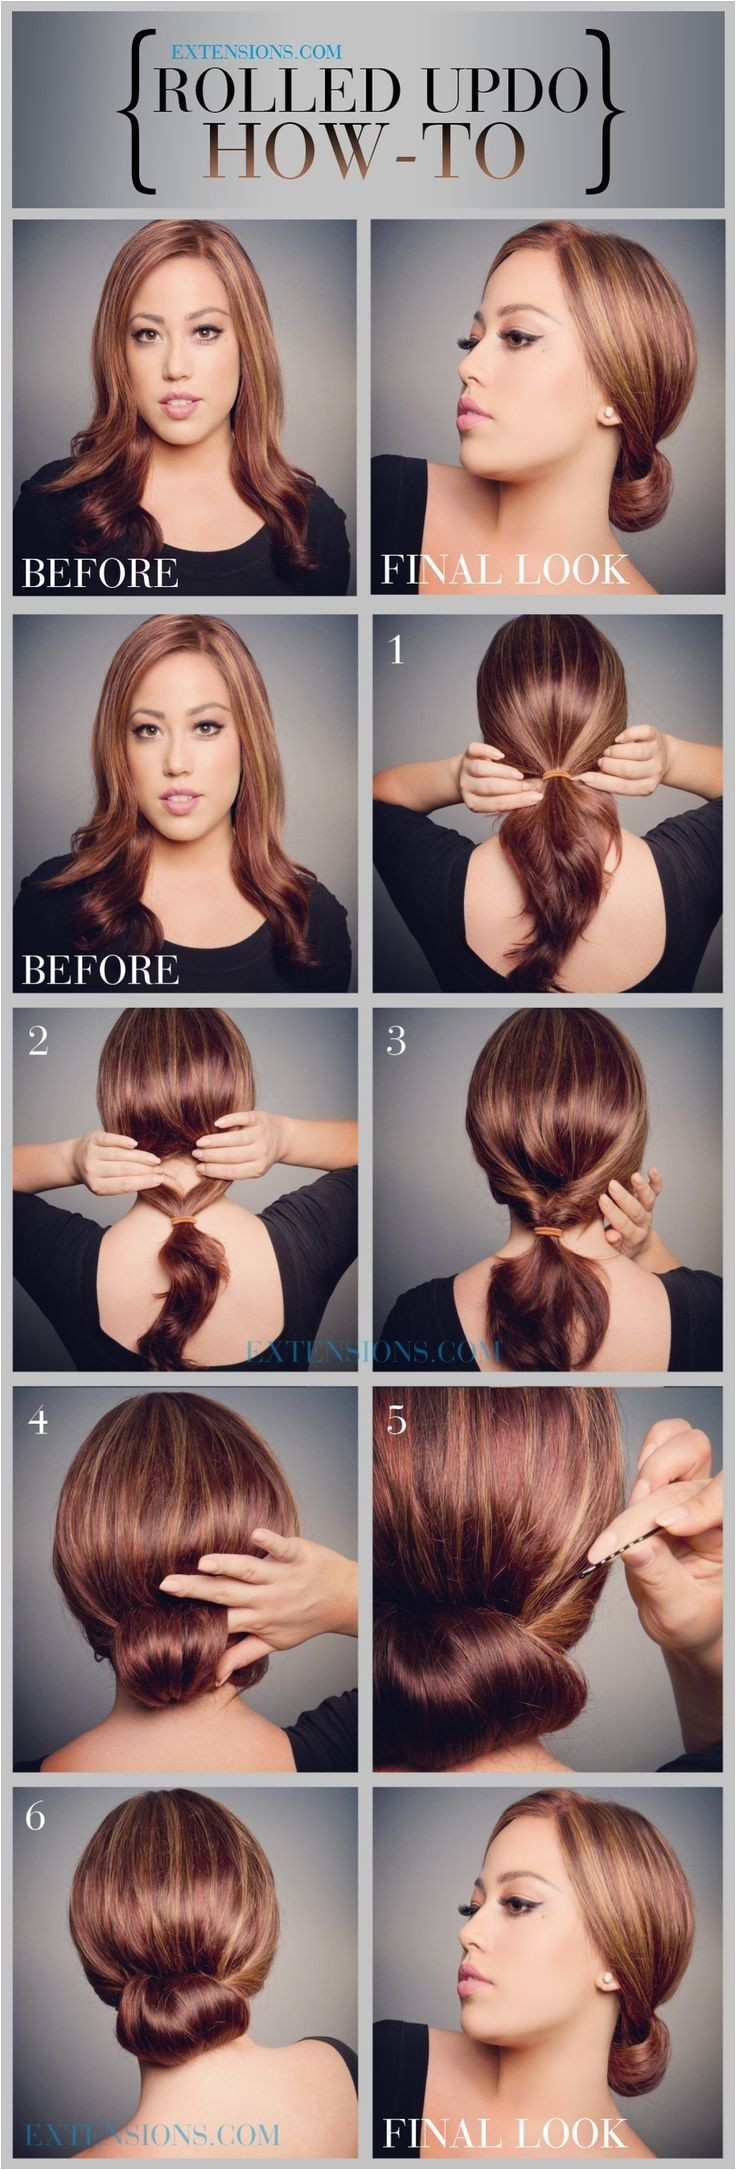 How to Do Easy Updo Hairstyles 12 Trendy Low Bun Updo Hairstyles Tutorials Easy Cute